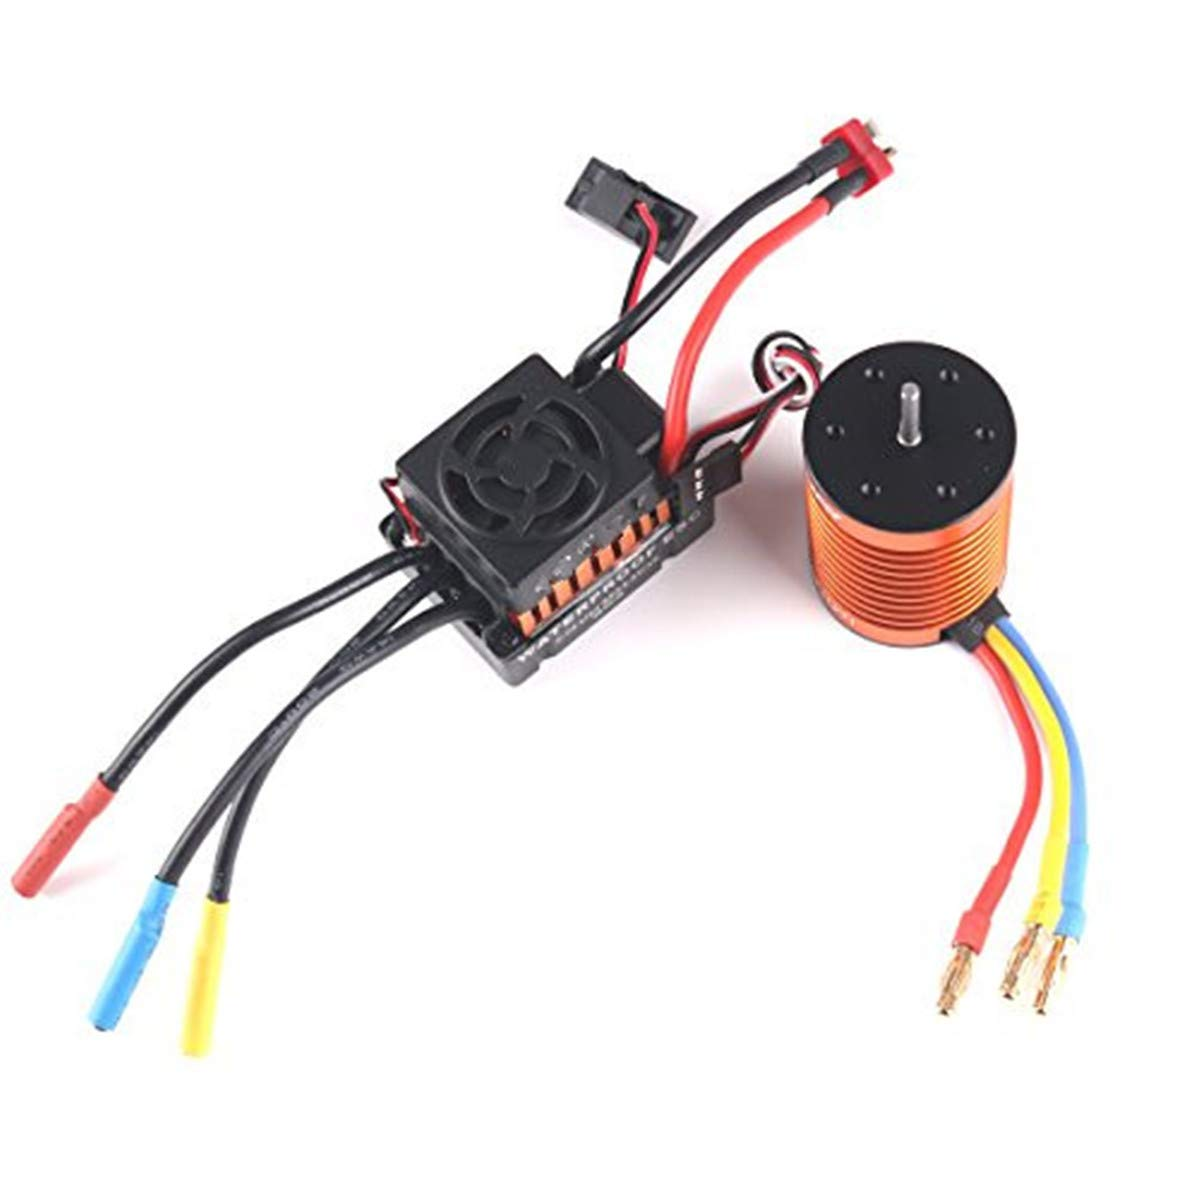 Crazepony-UK B3650 3900KV Sensorless Brushless Motor CNC Waterproof and 60A ESC Electronic Speed Controller Shaft 3.175mm for 1//10 RC Car Truck Running Off-Road Car